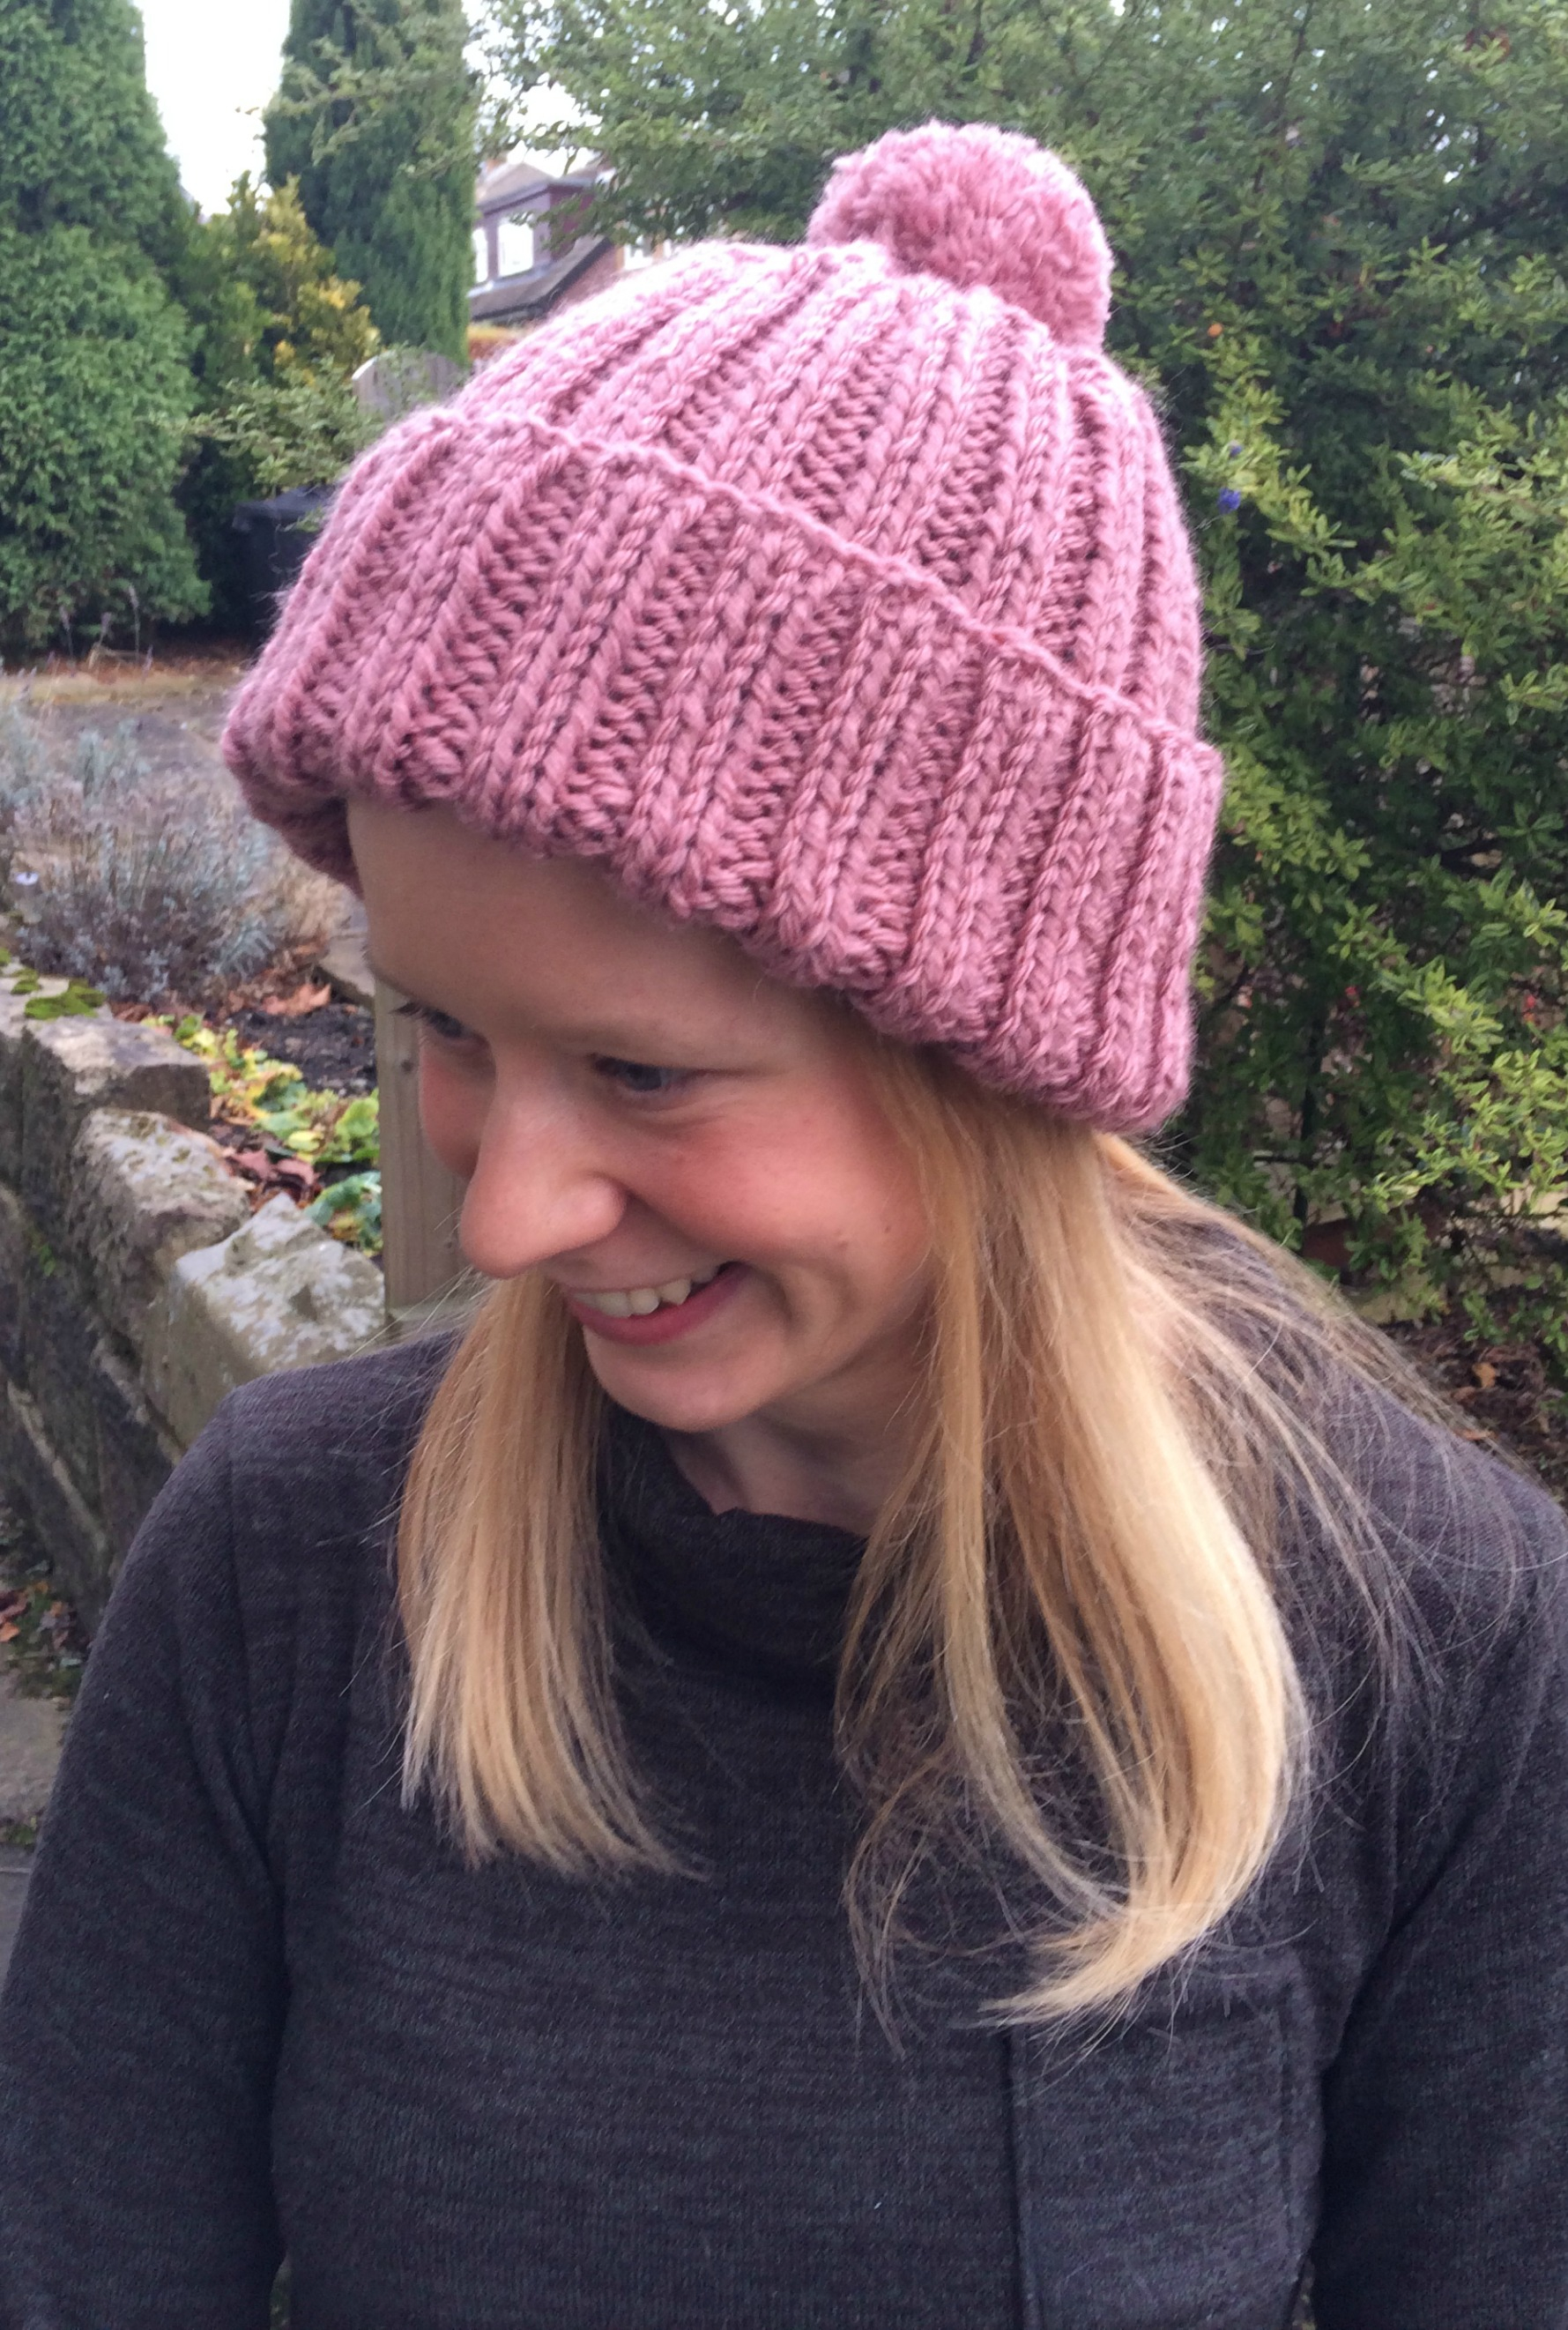 Bobble Hat Knitting Pattern Free I Knitted A Woolly Hat Free Knitting Pattern Sew Sensational